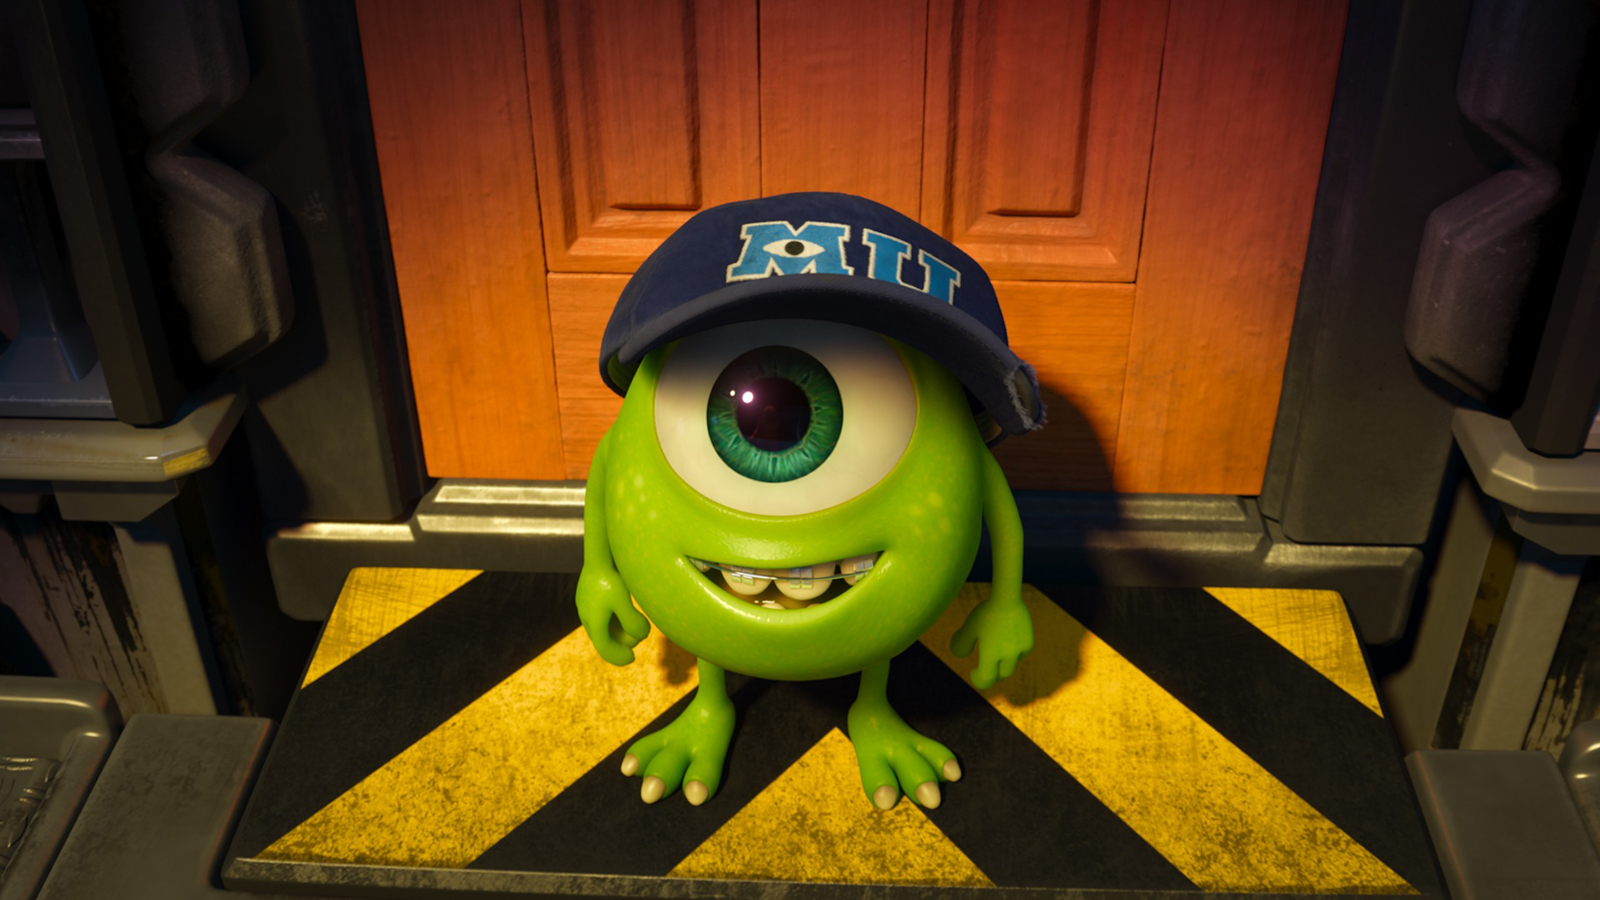 Monsters university 15006 1600x900 px hdwallsource monsters university 15006 voltagebd Images